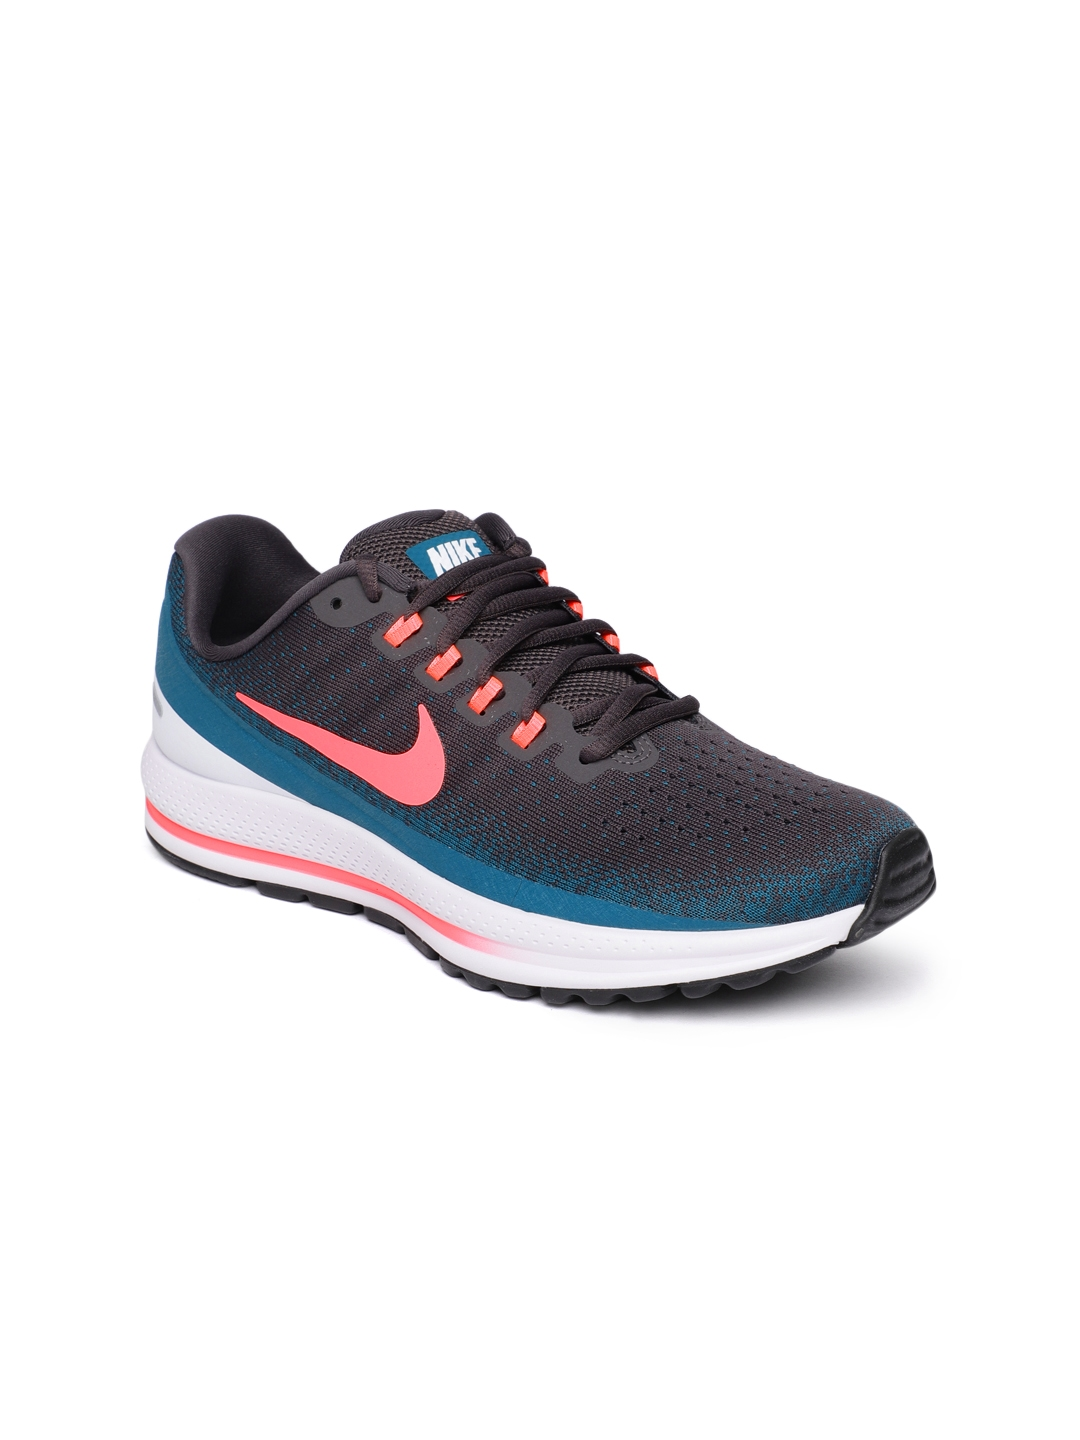 reputable site 03e92 8c715 Nike Women Grey Air Zoom Vomero 13 Running Shoes